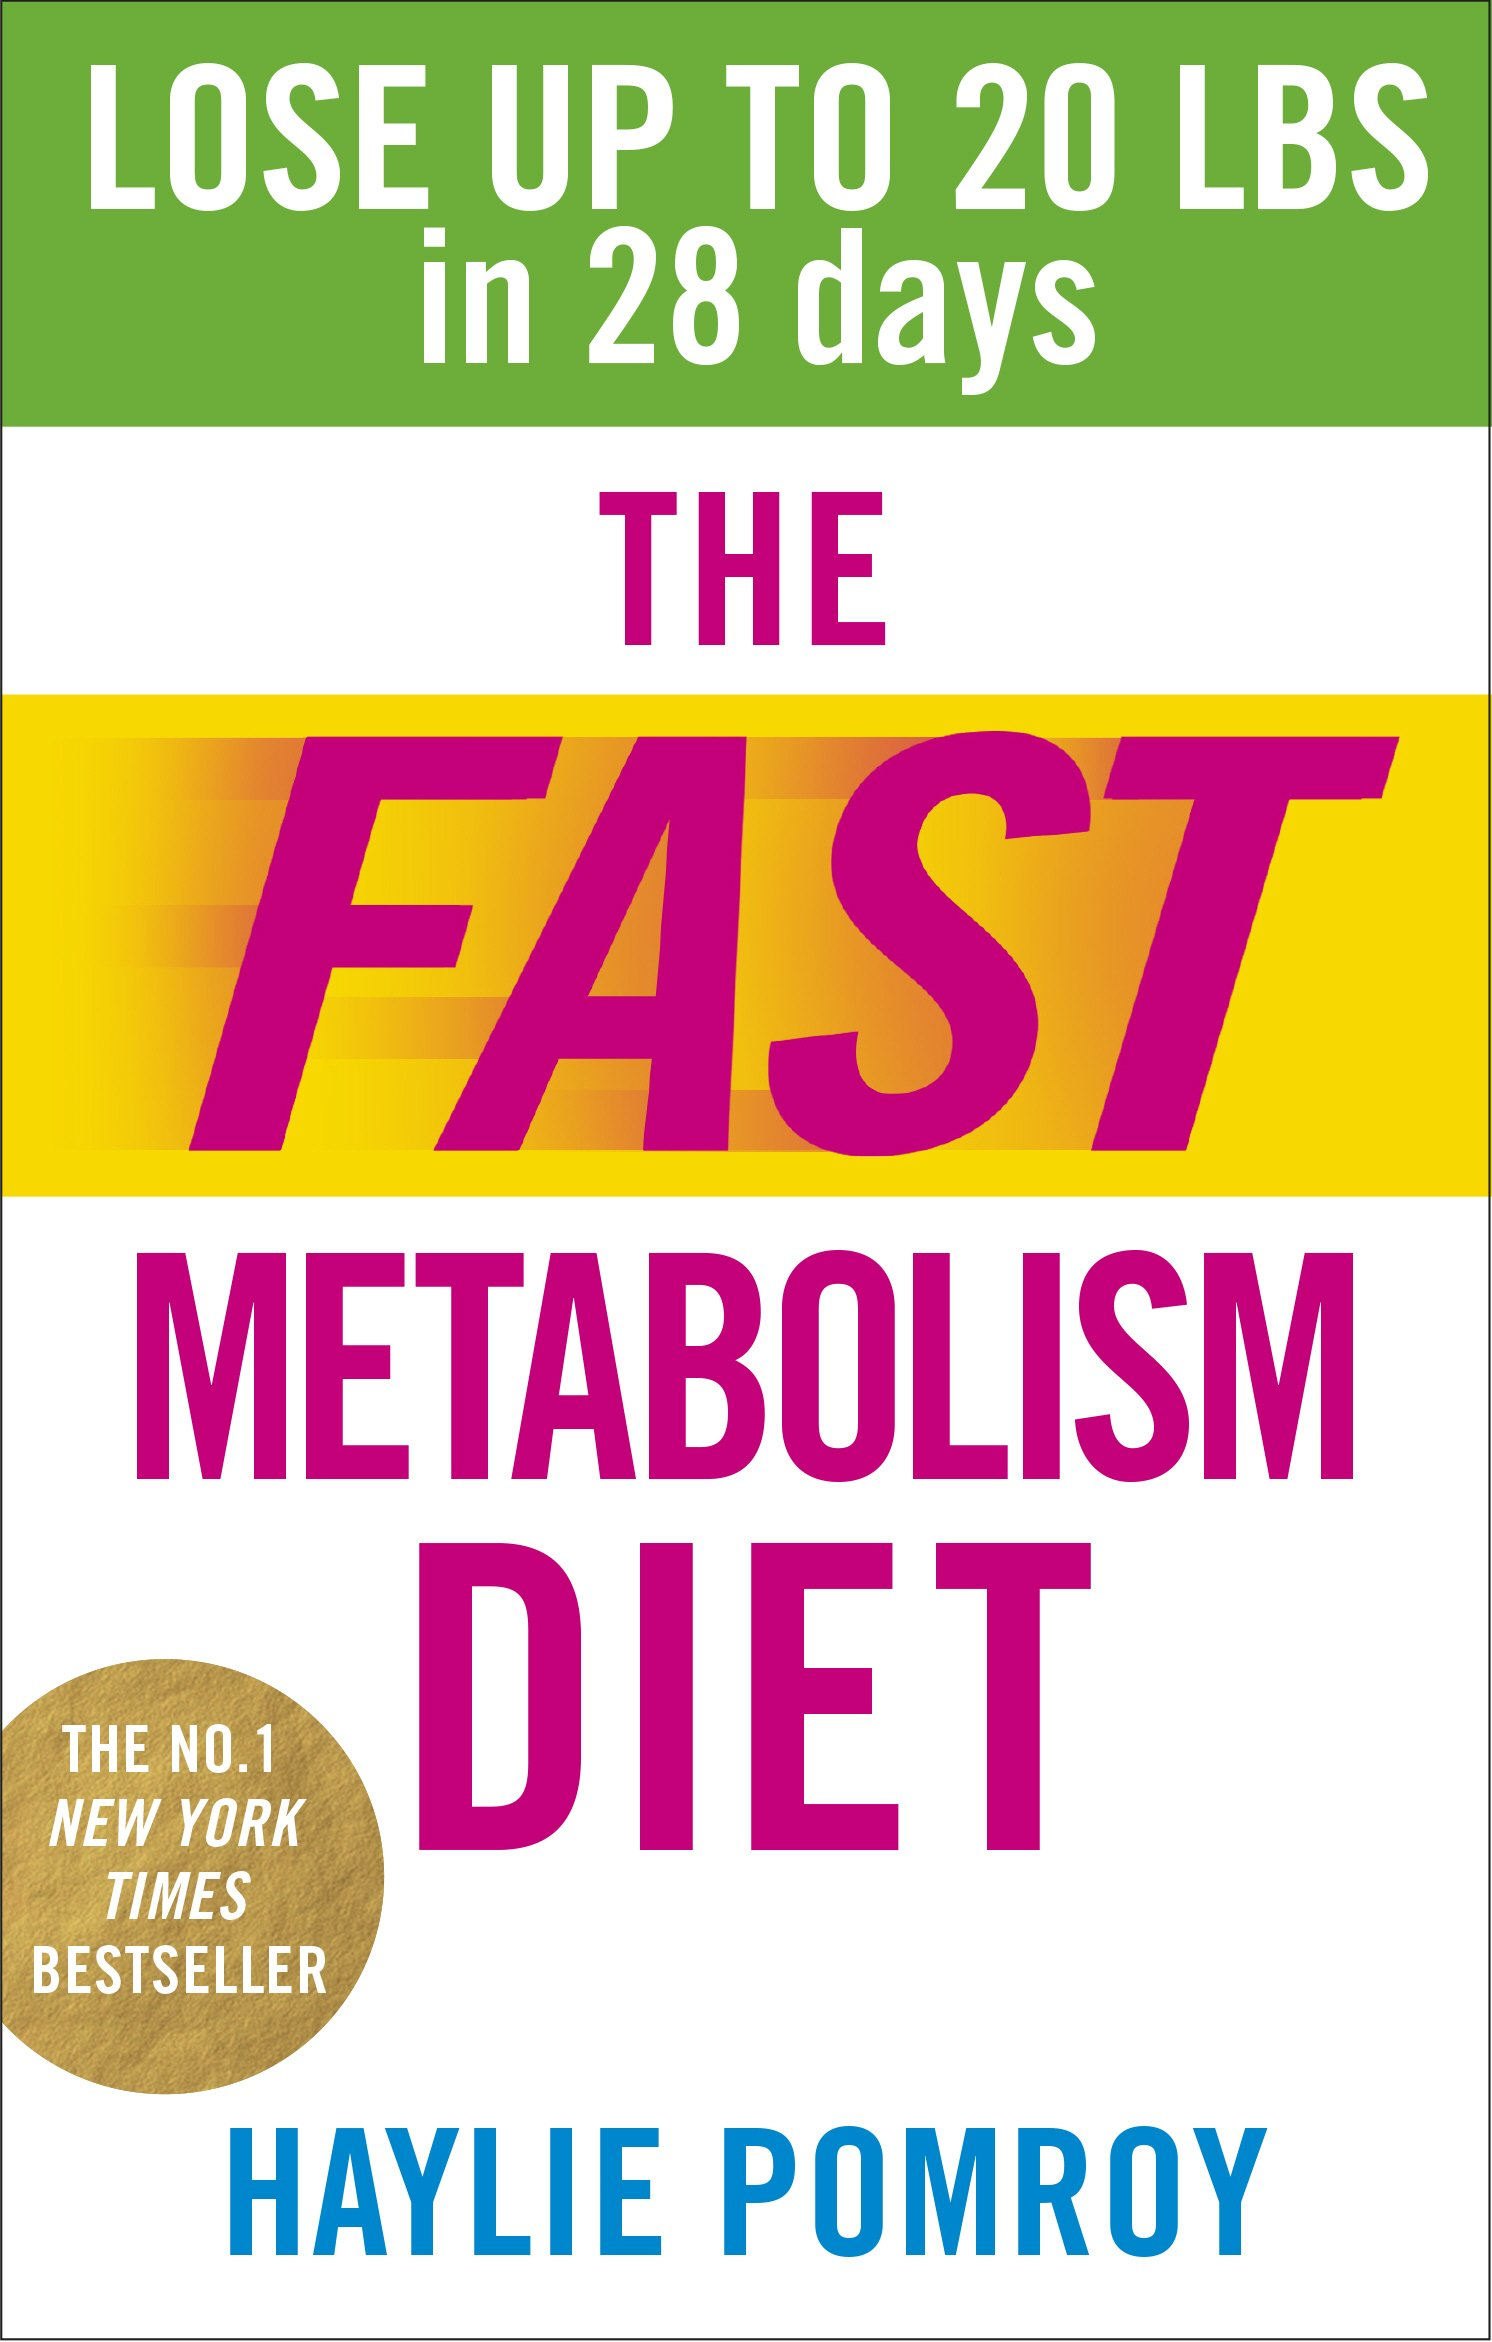 The Fast Metabolism Diet: Lose Up to 20 Pounds in 28 Days: Eat More Food &  Lose More Weight: Amazon.es: Haylie Pomroy: Libros en idiomas extranjeros